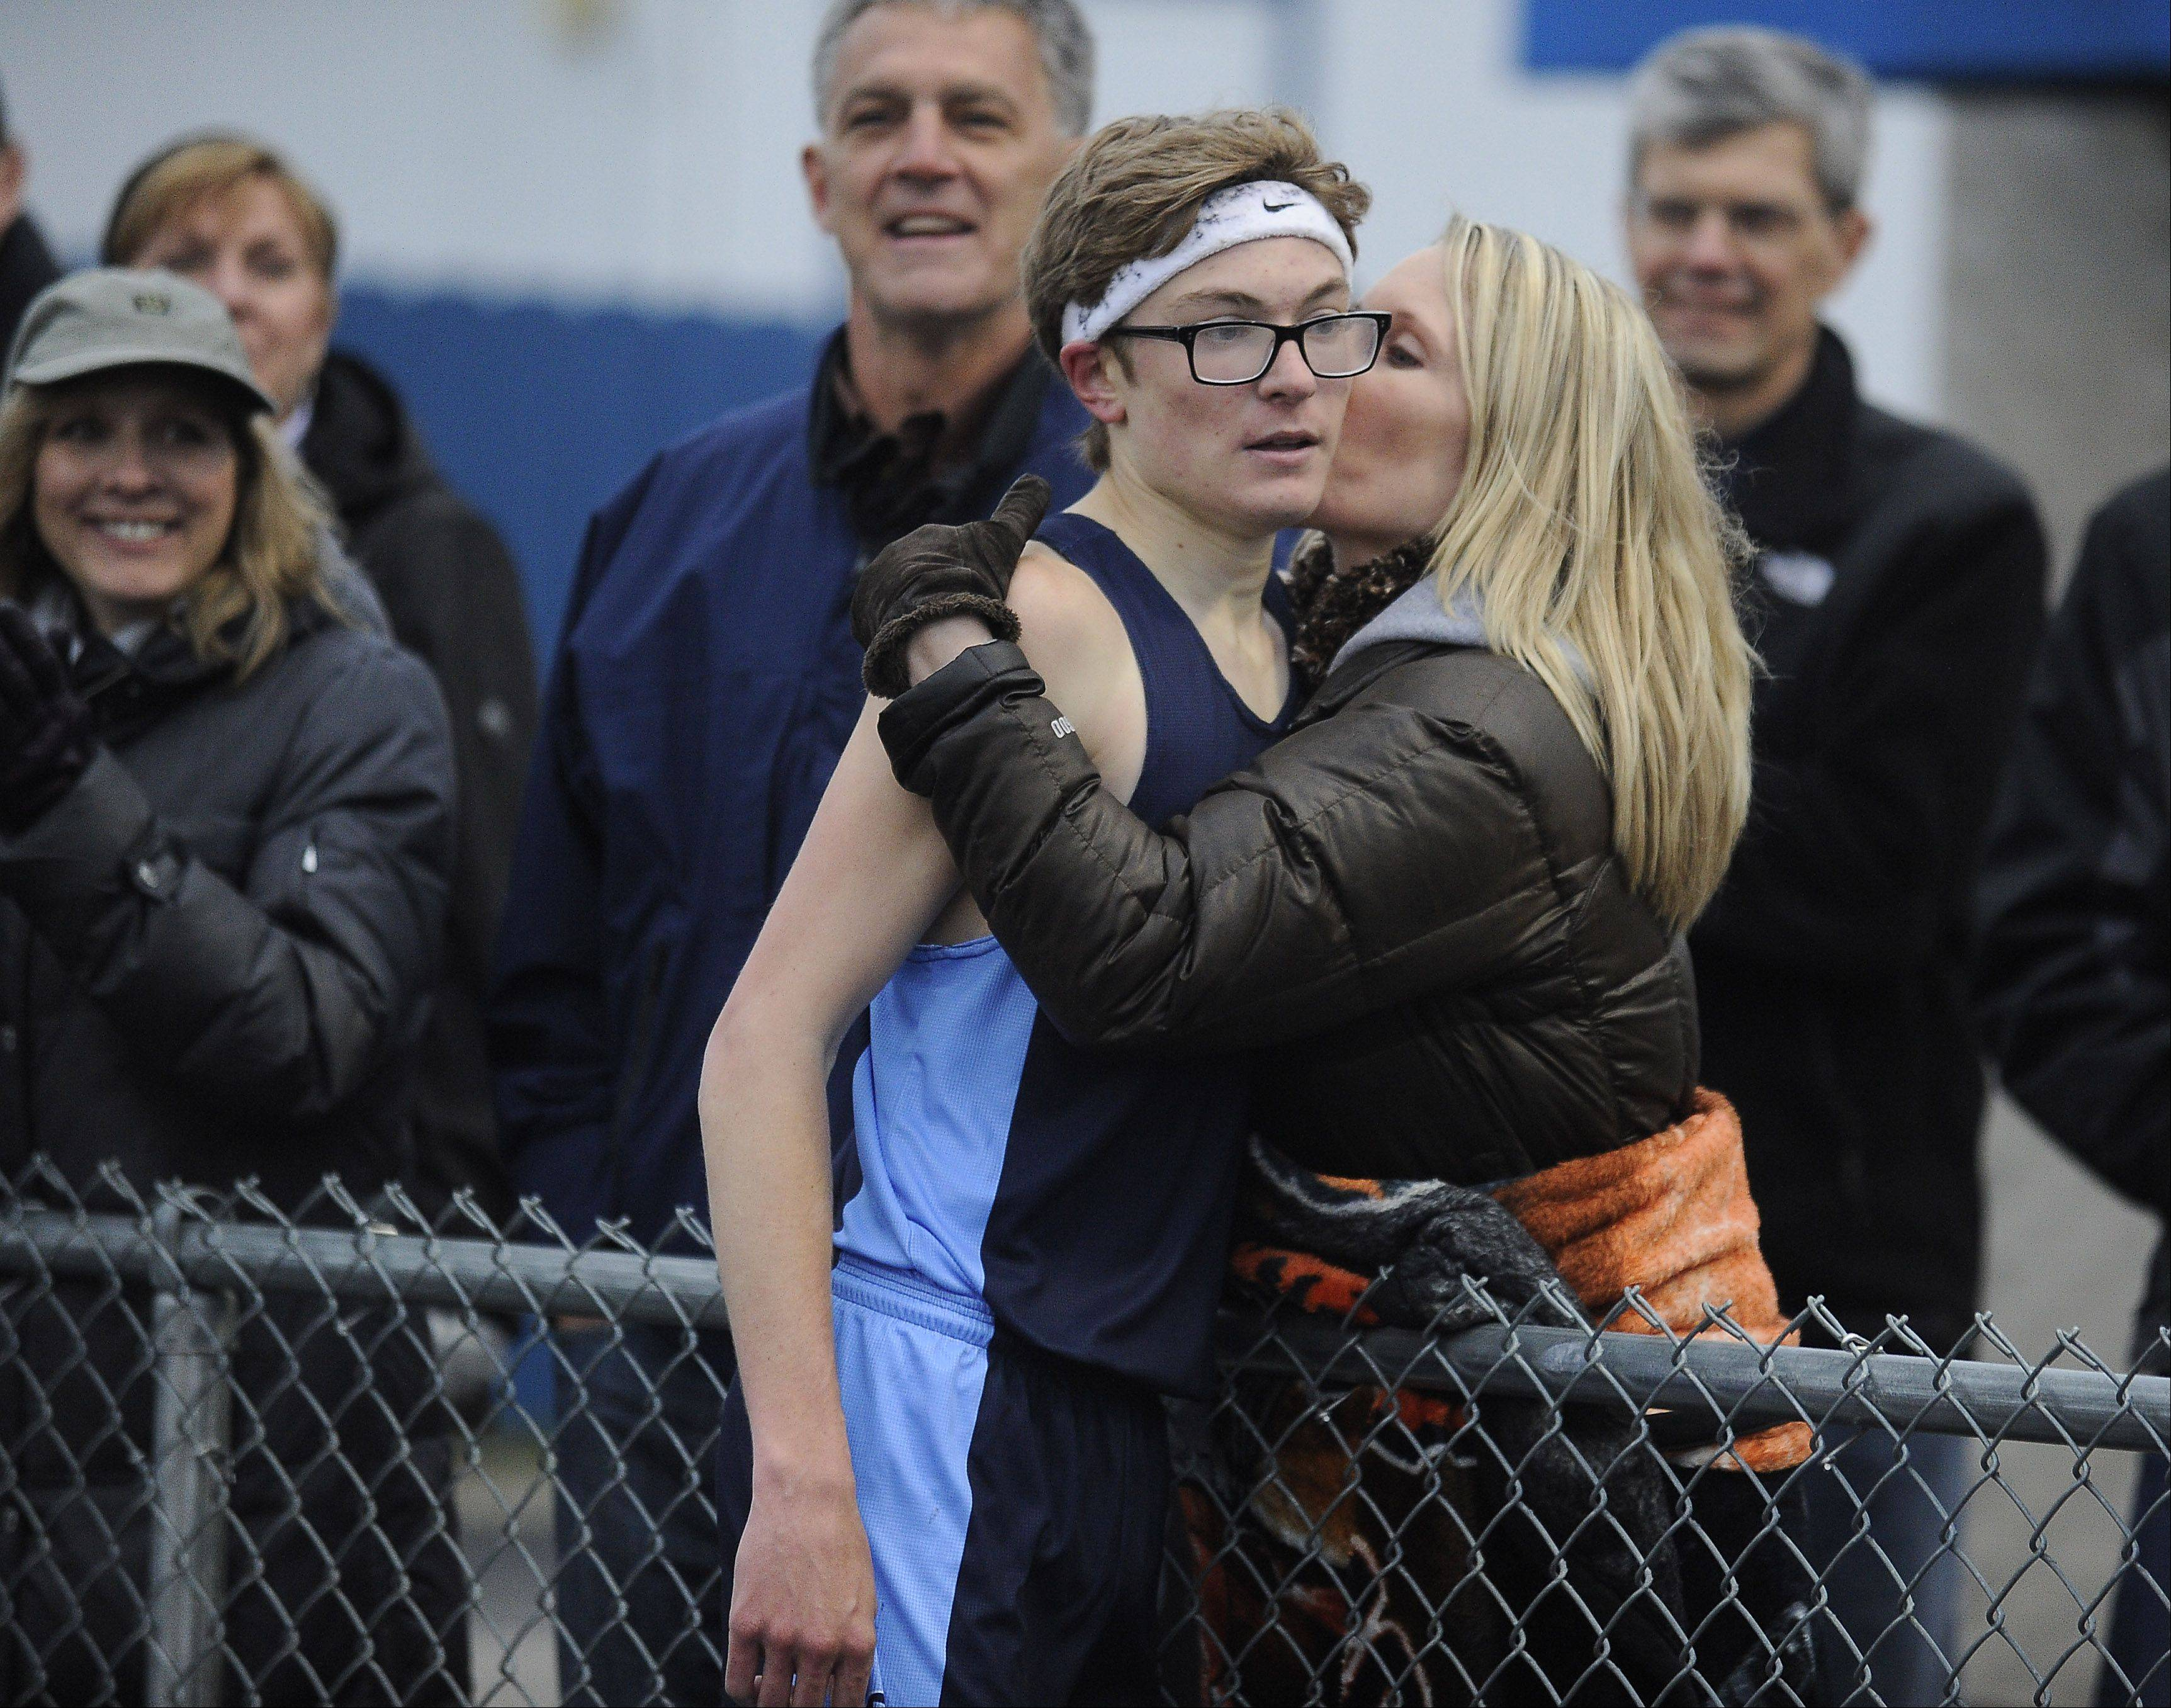 Mark Welsh/mwelsh@dailyherald.comQuentin Schaeffer of Prospect wins the 3,200-meter run and gets a kiss from his mom, Shannon, in the Mid-Suburban League meet at Hoffman Estates on Friday.